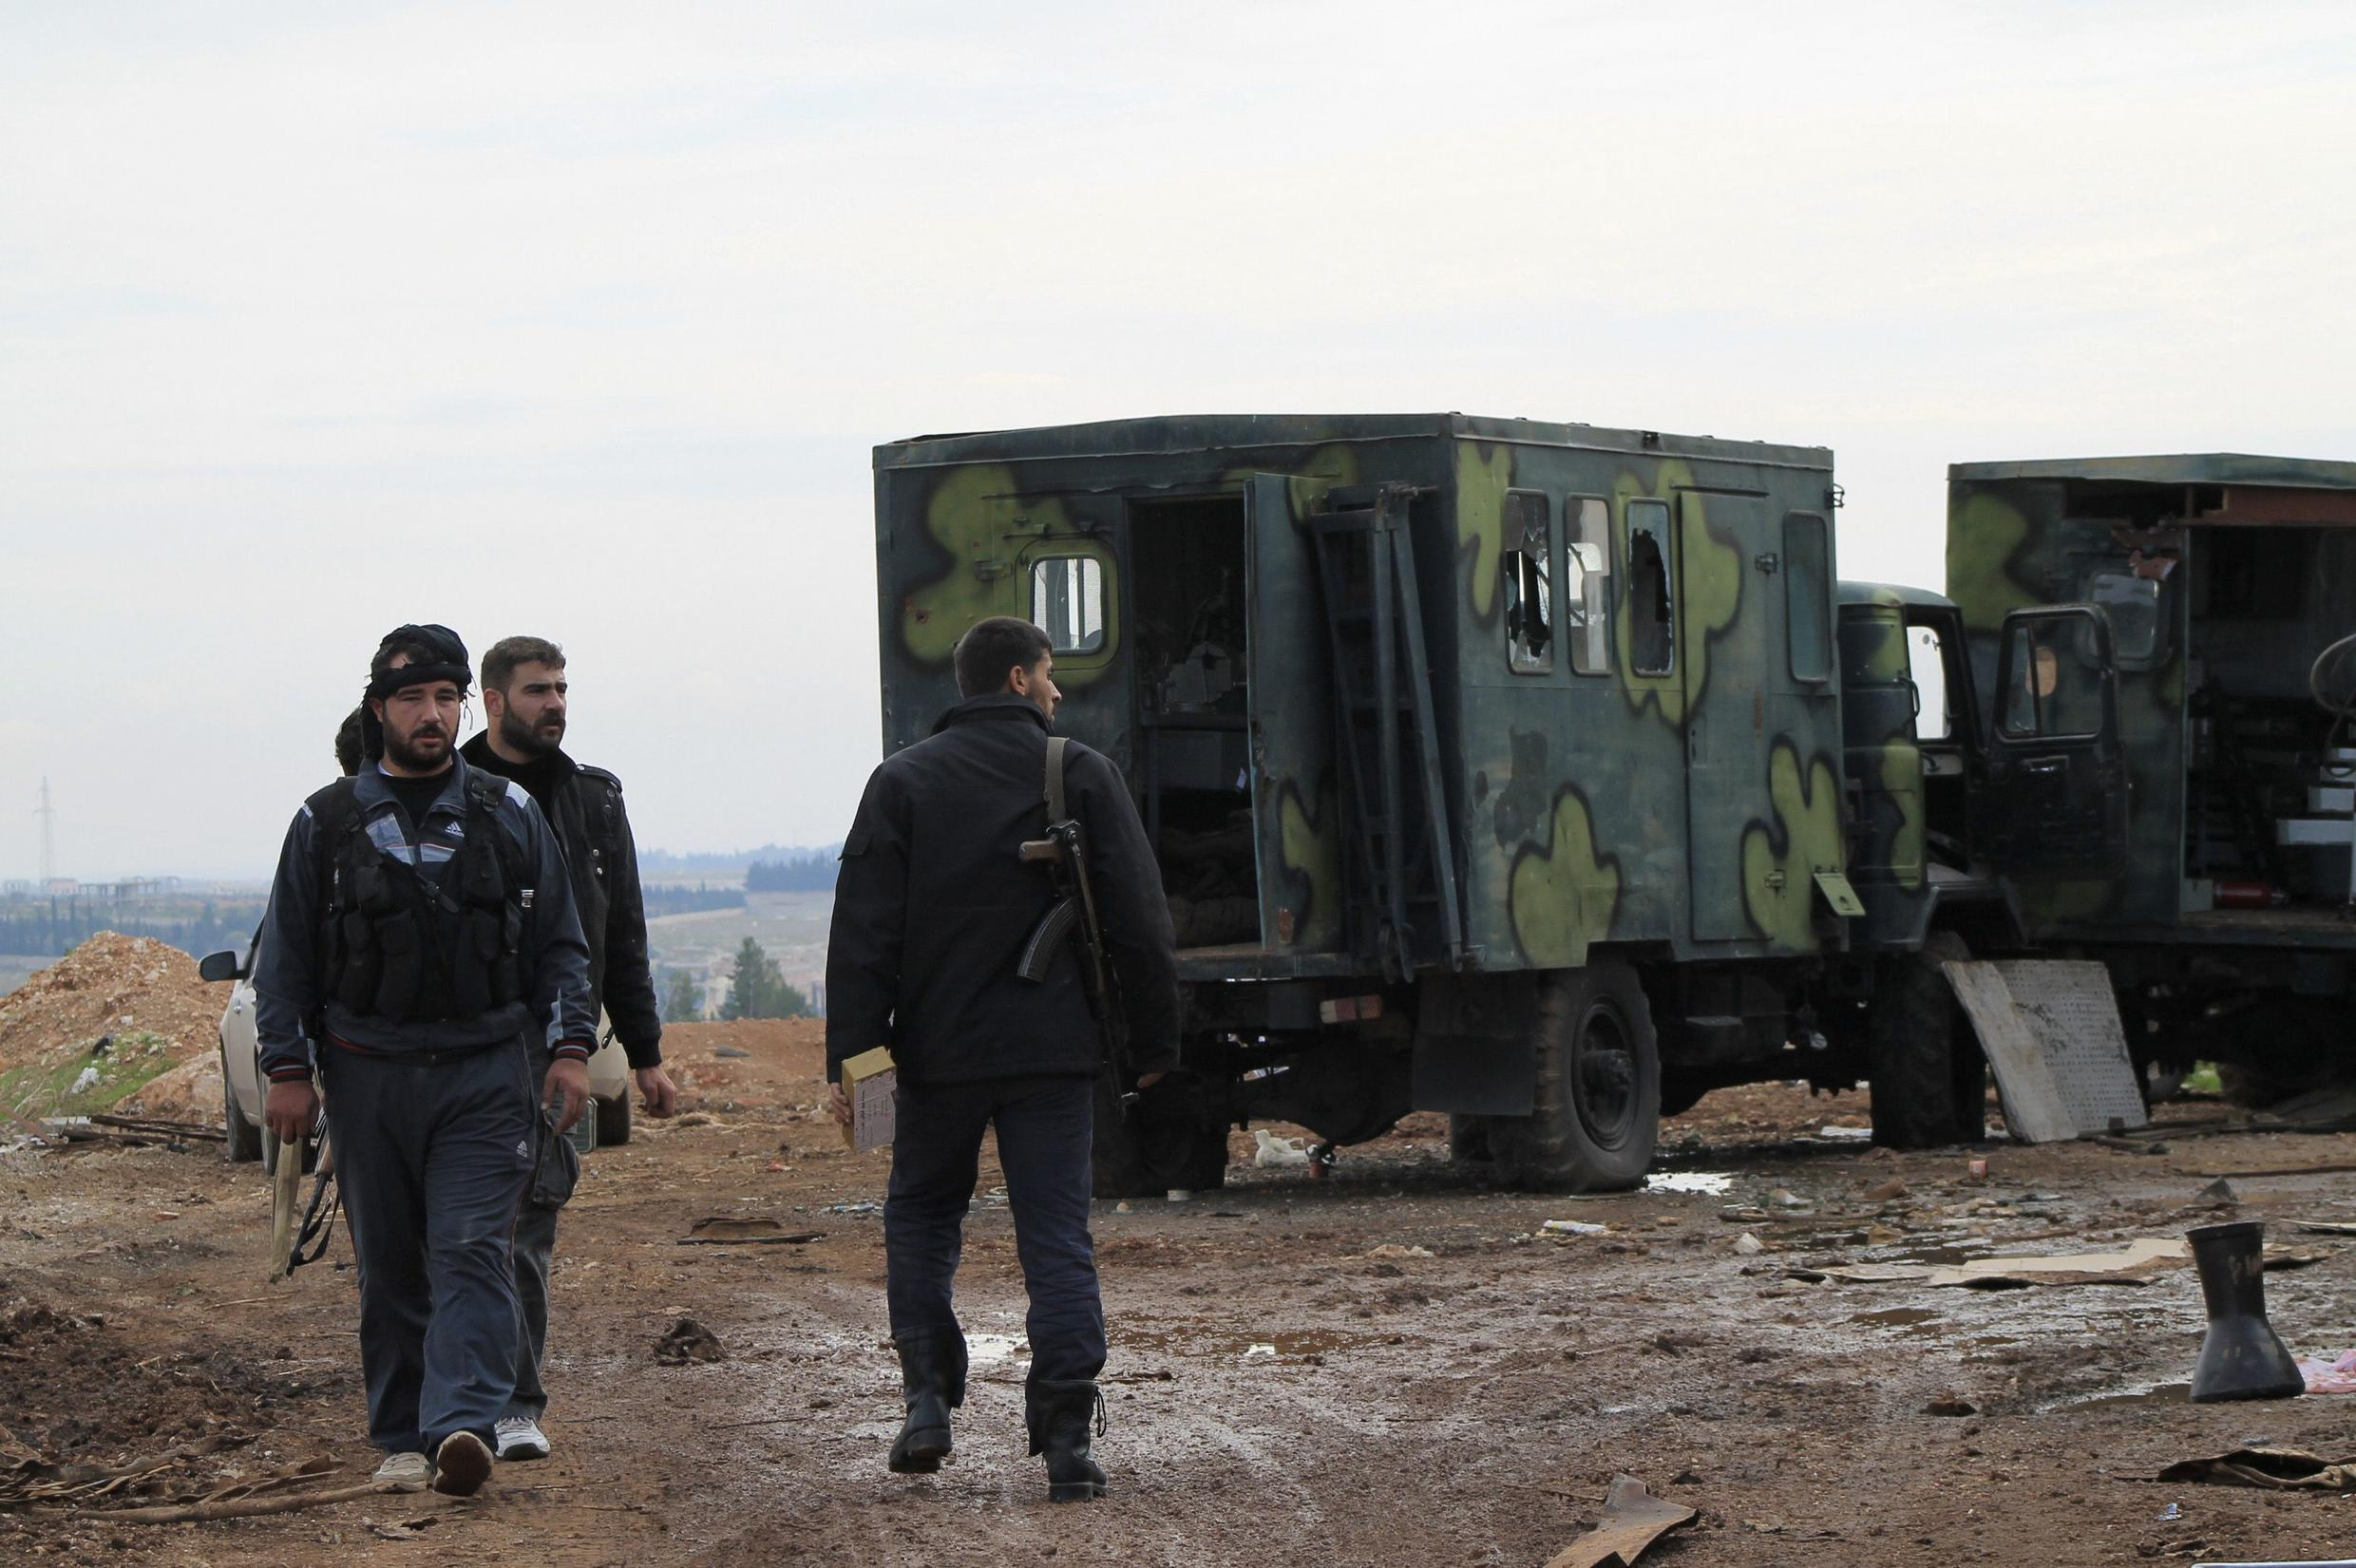 Free Syrian Army fighters near military trucks after they said they fought and defeated government troops at a military base at the town of Atareb near Aleppo